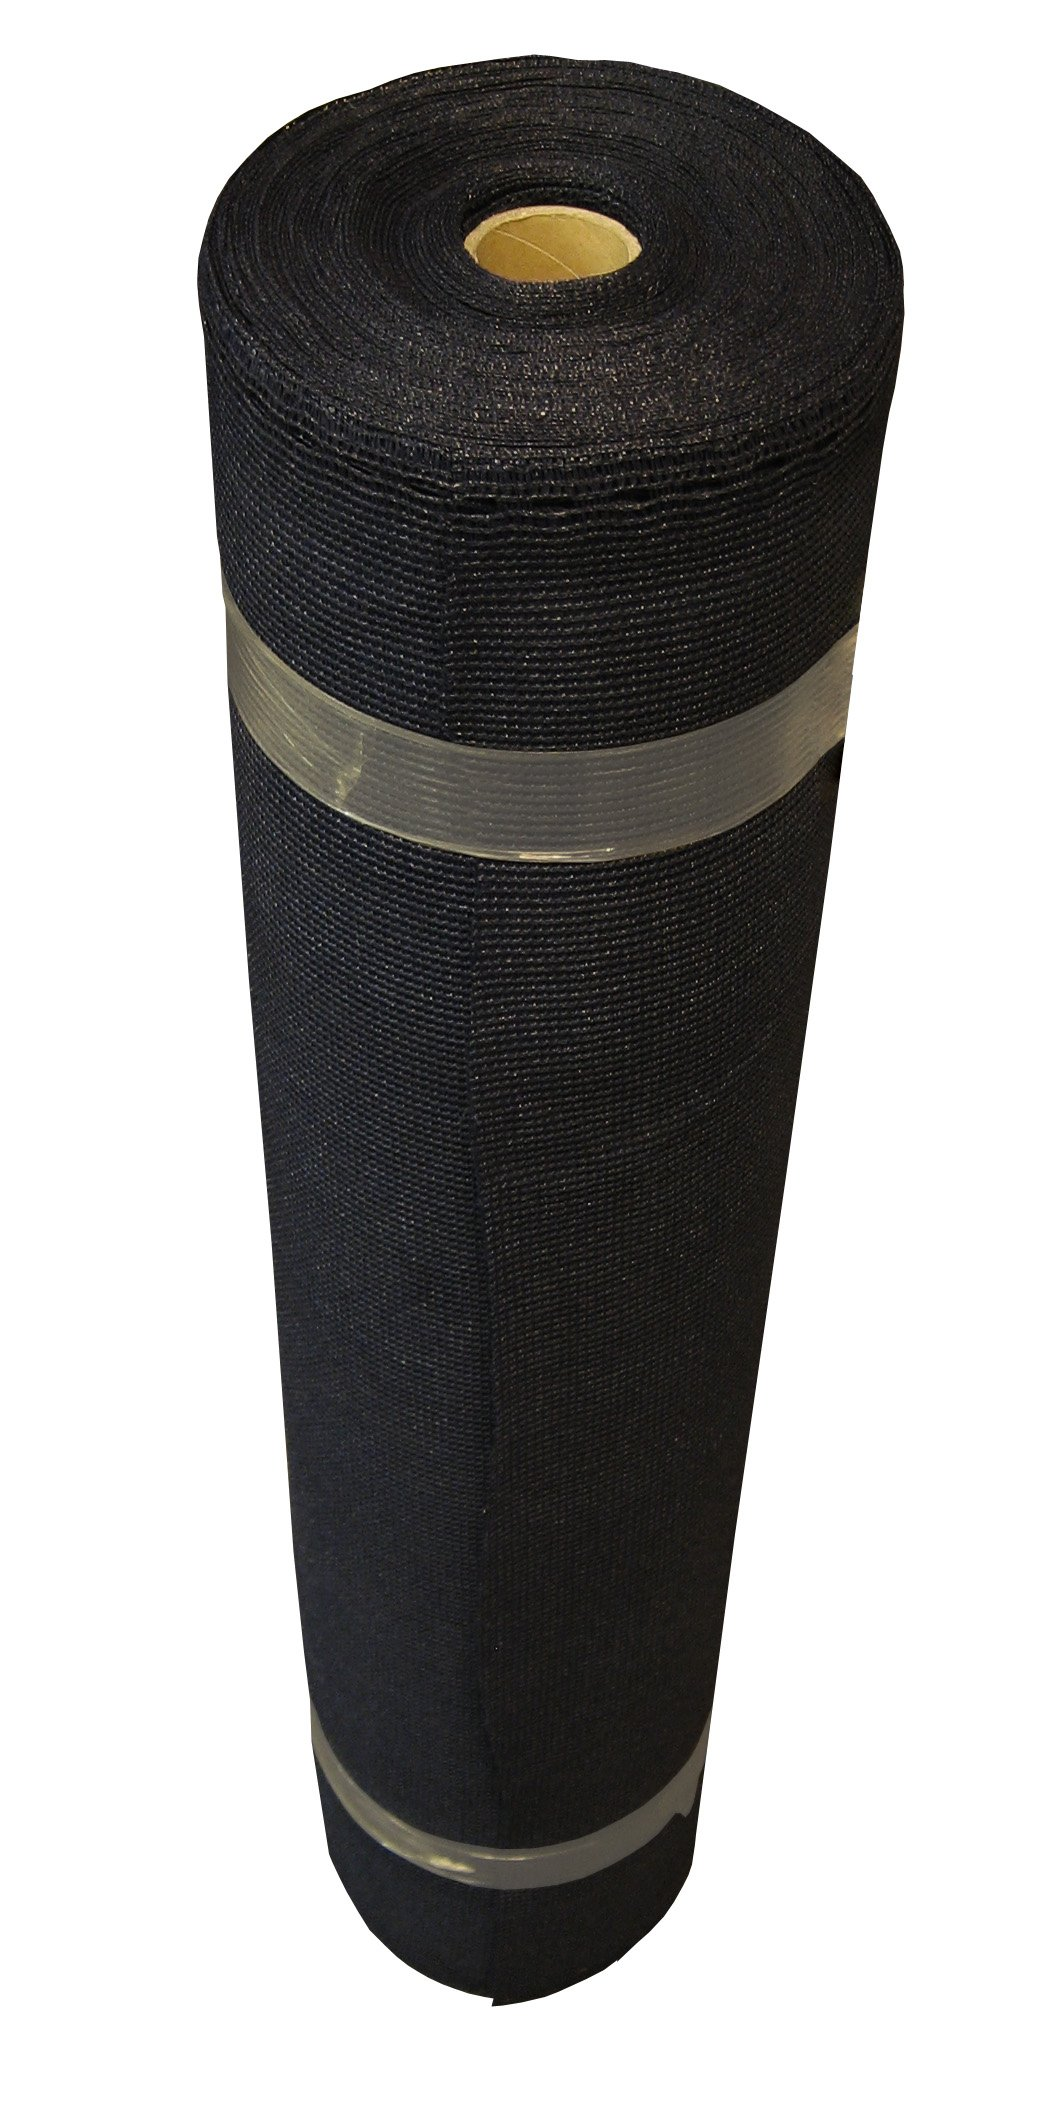 Coolaroo Shade Fabric 70% UV Coverage Outdoor or Exterior Privacy and Screening, Medium Roll (12' X 50'), Black